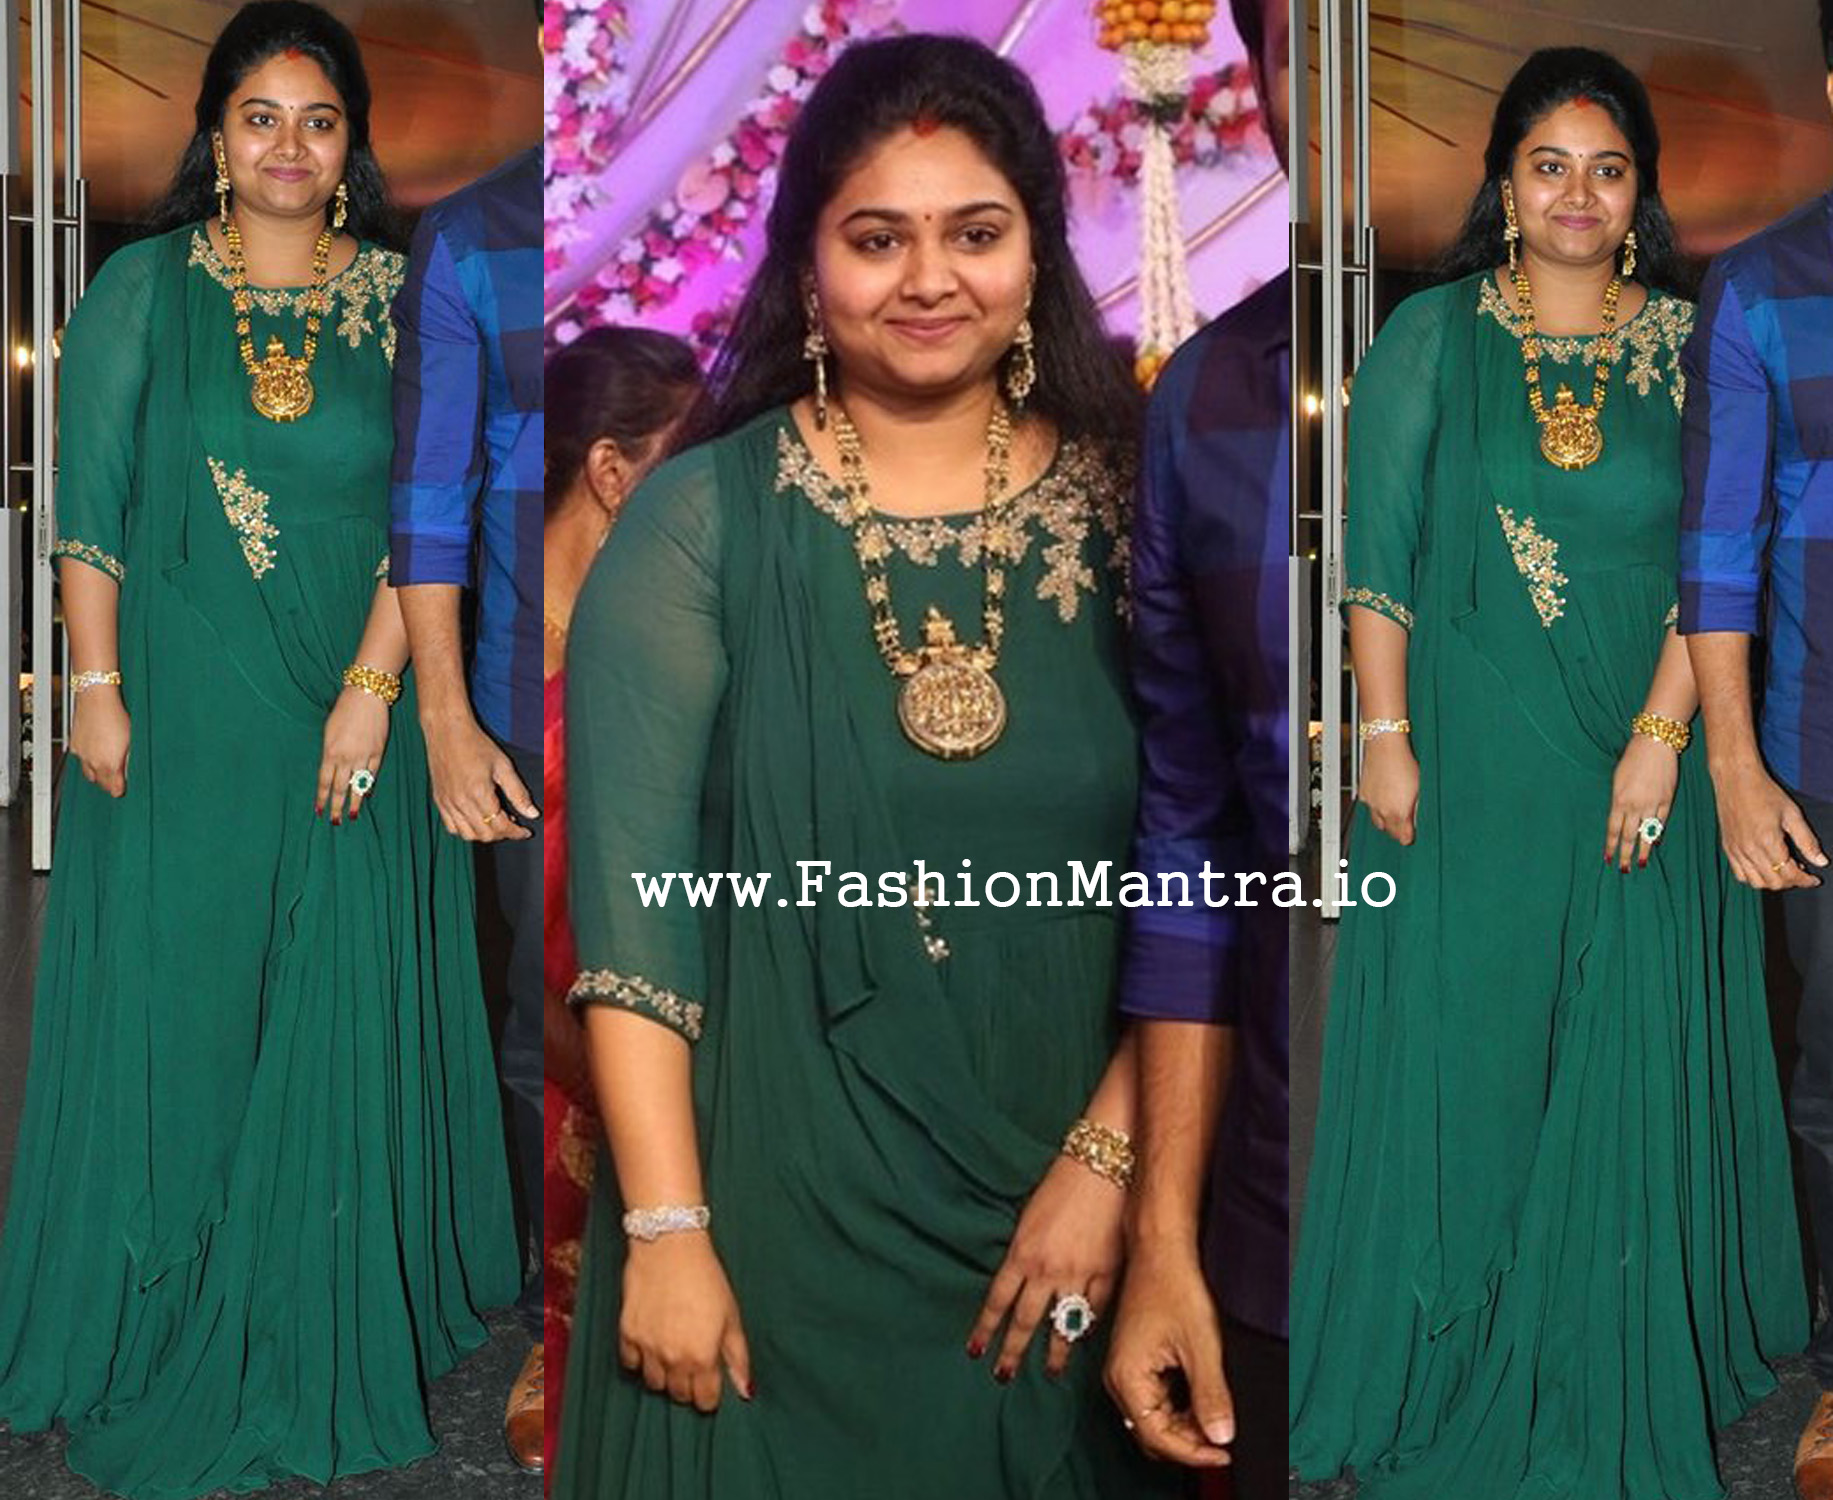 Gopichand wife Reshma in Anarkali